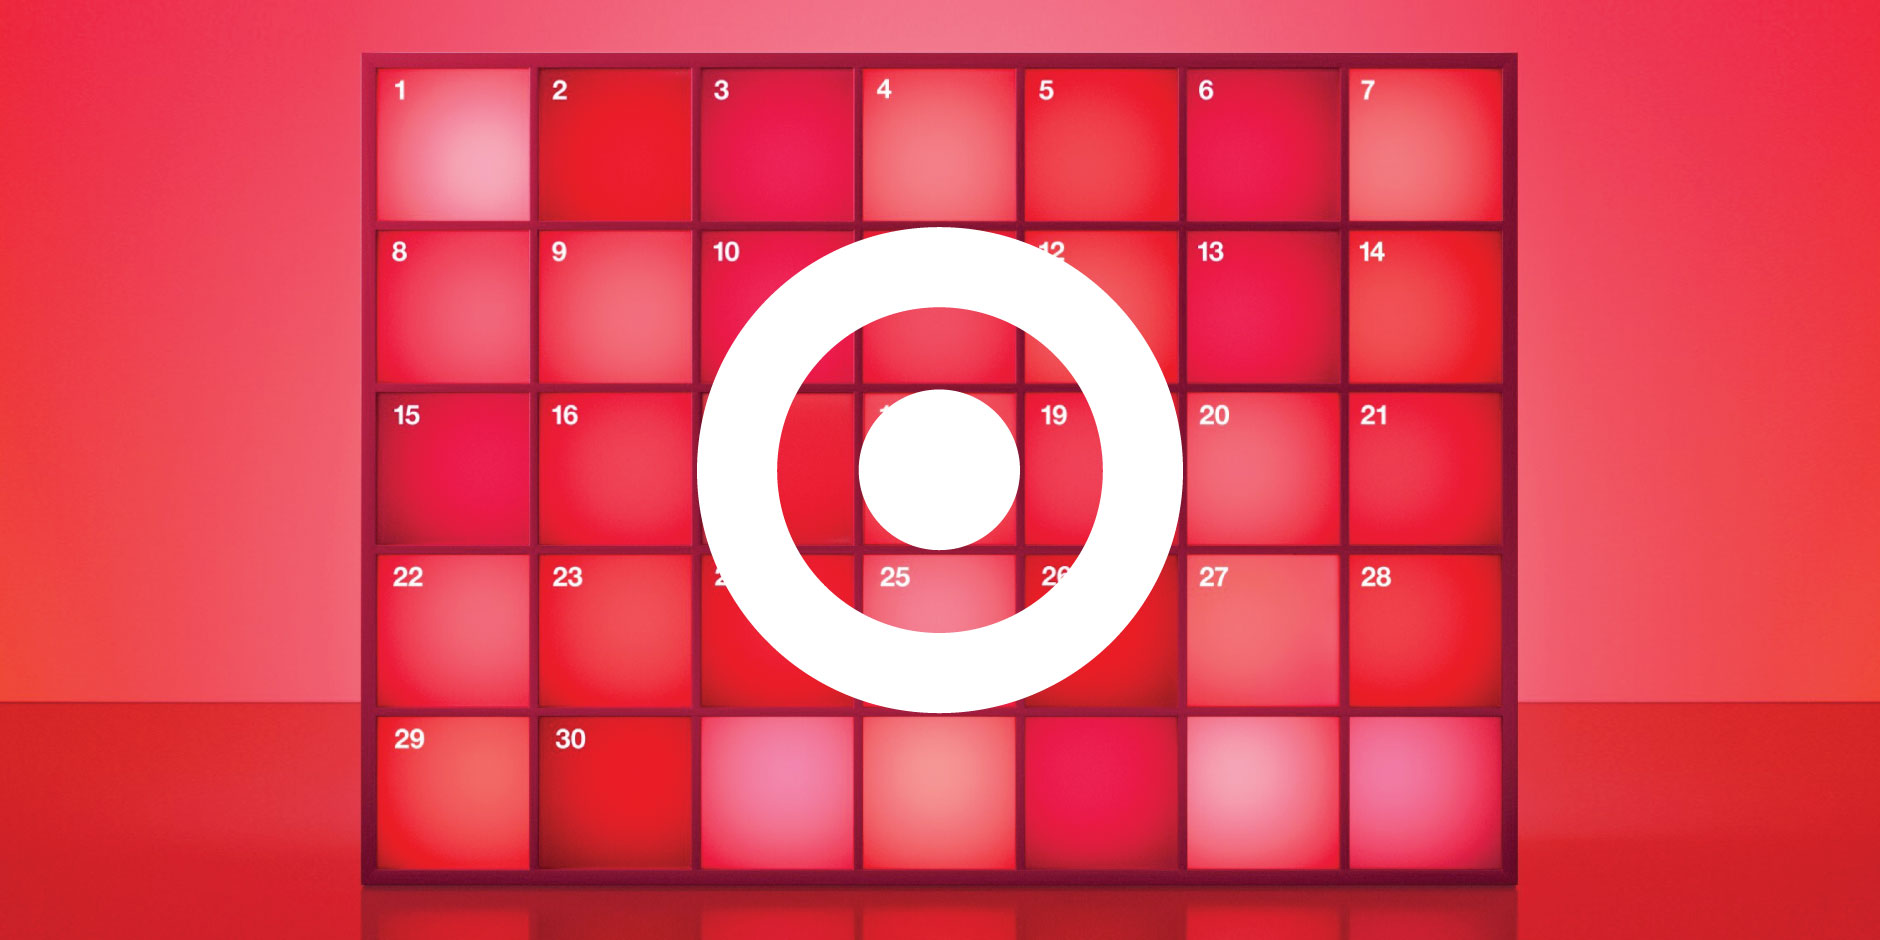 A white bullseye is overlaid onto a calendar page featuring red squares